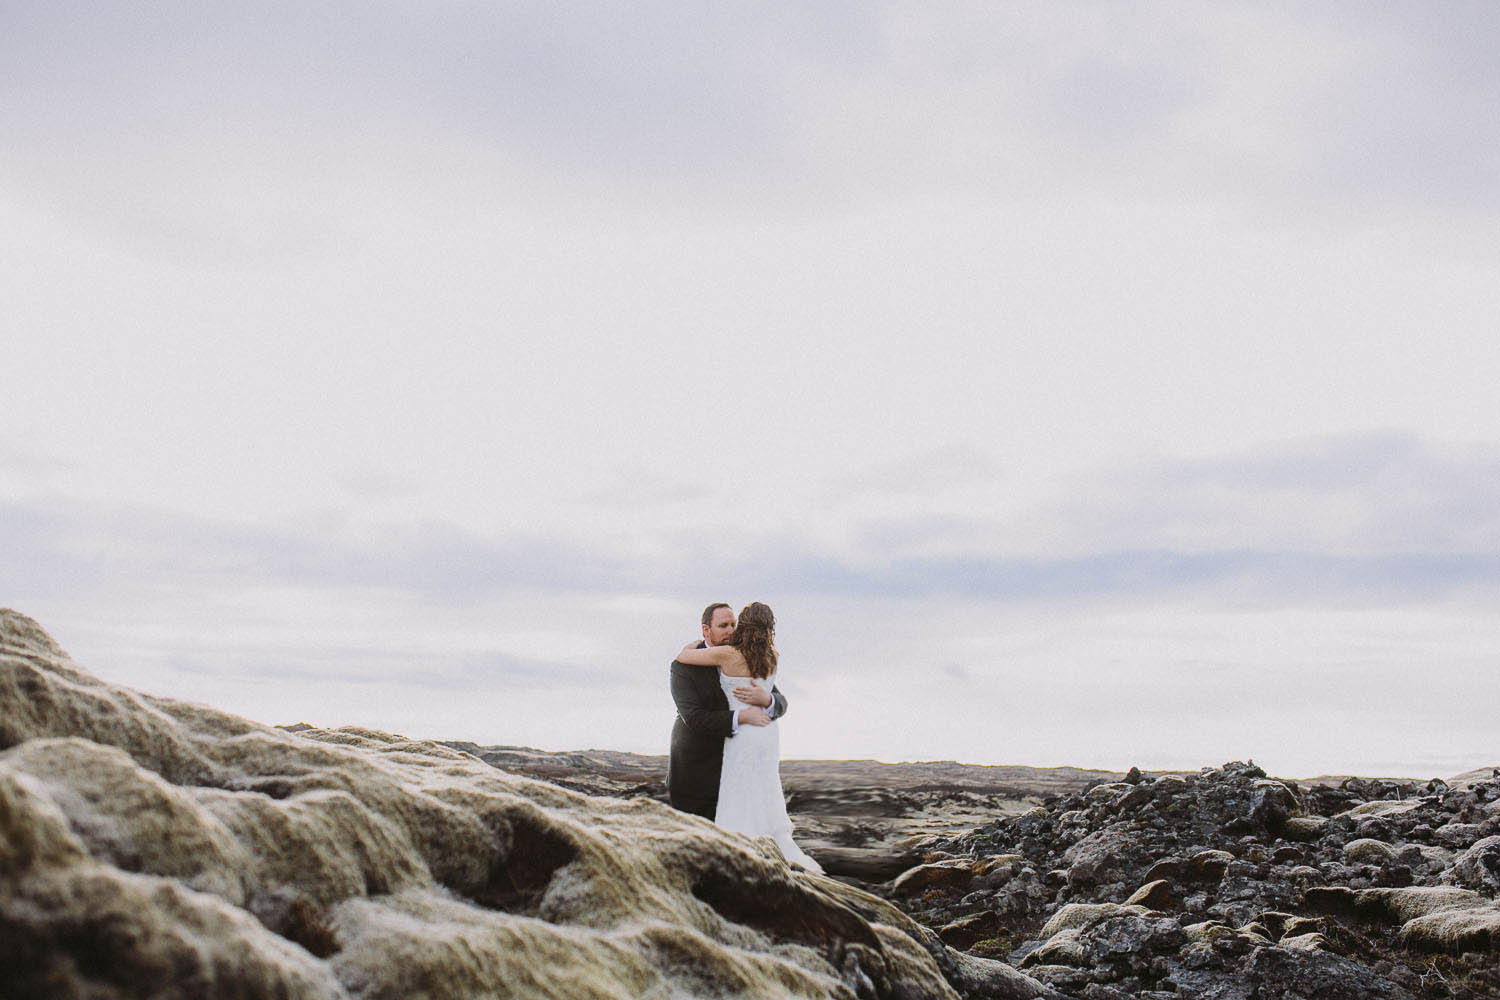 iceland_reykjavik_vik_wedding_photographer-135